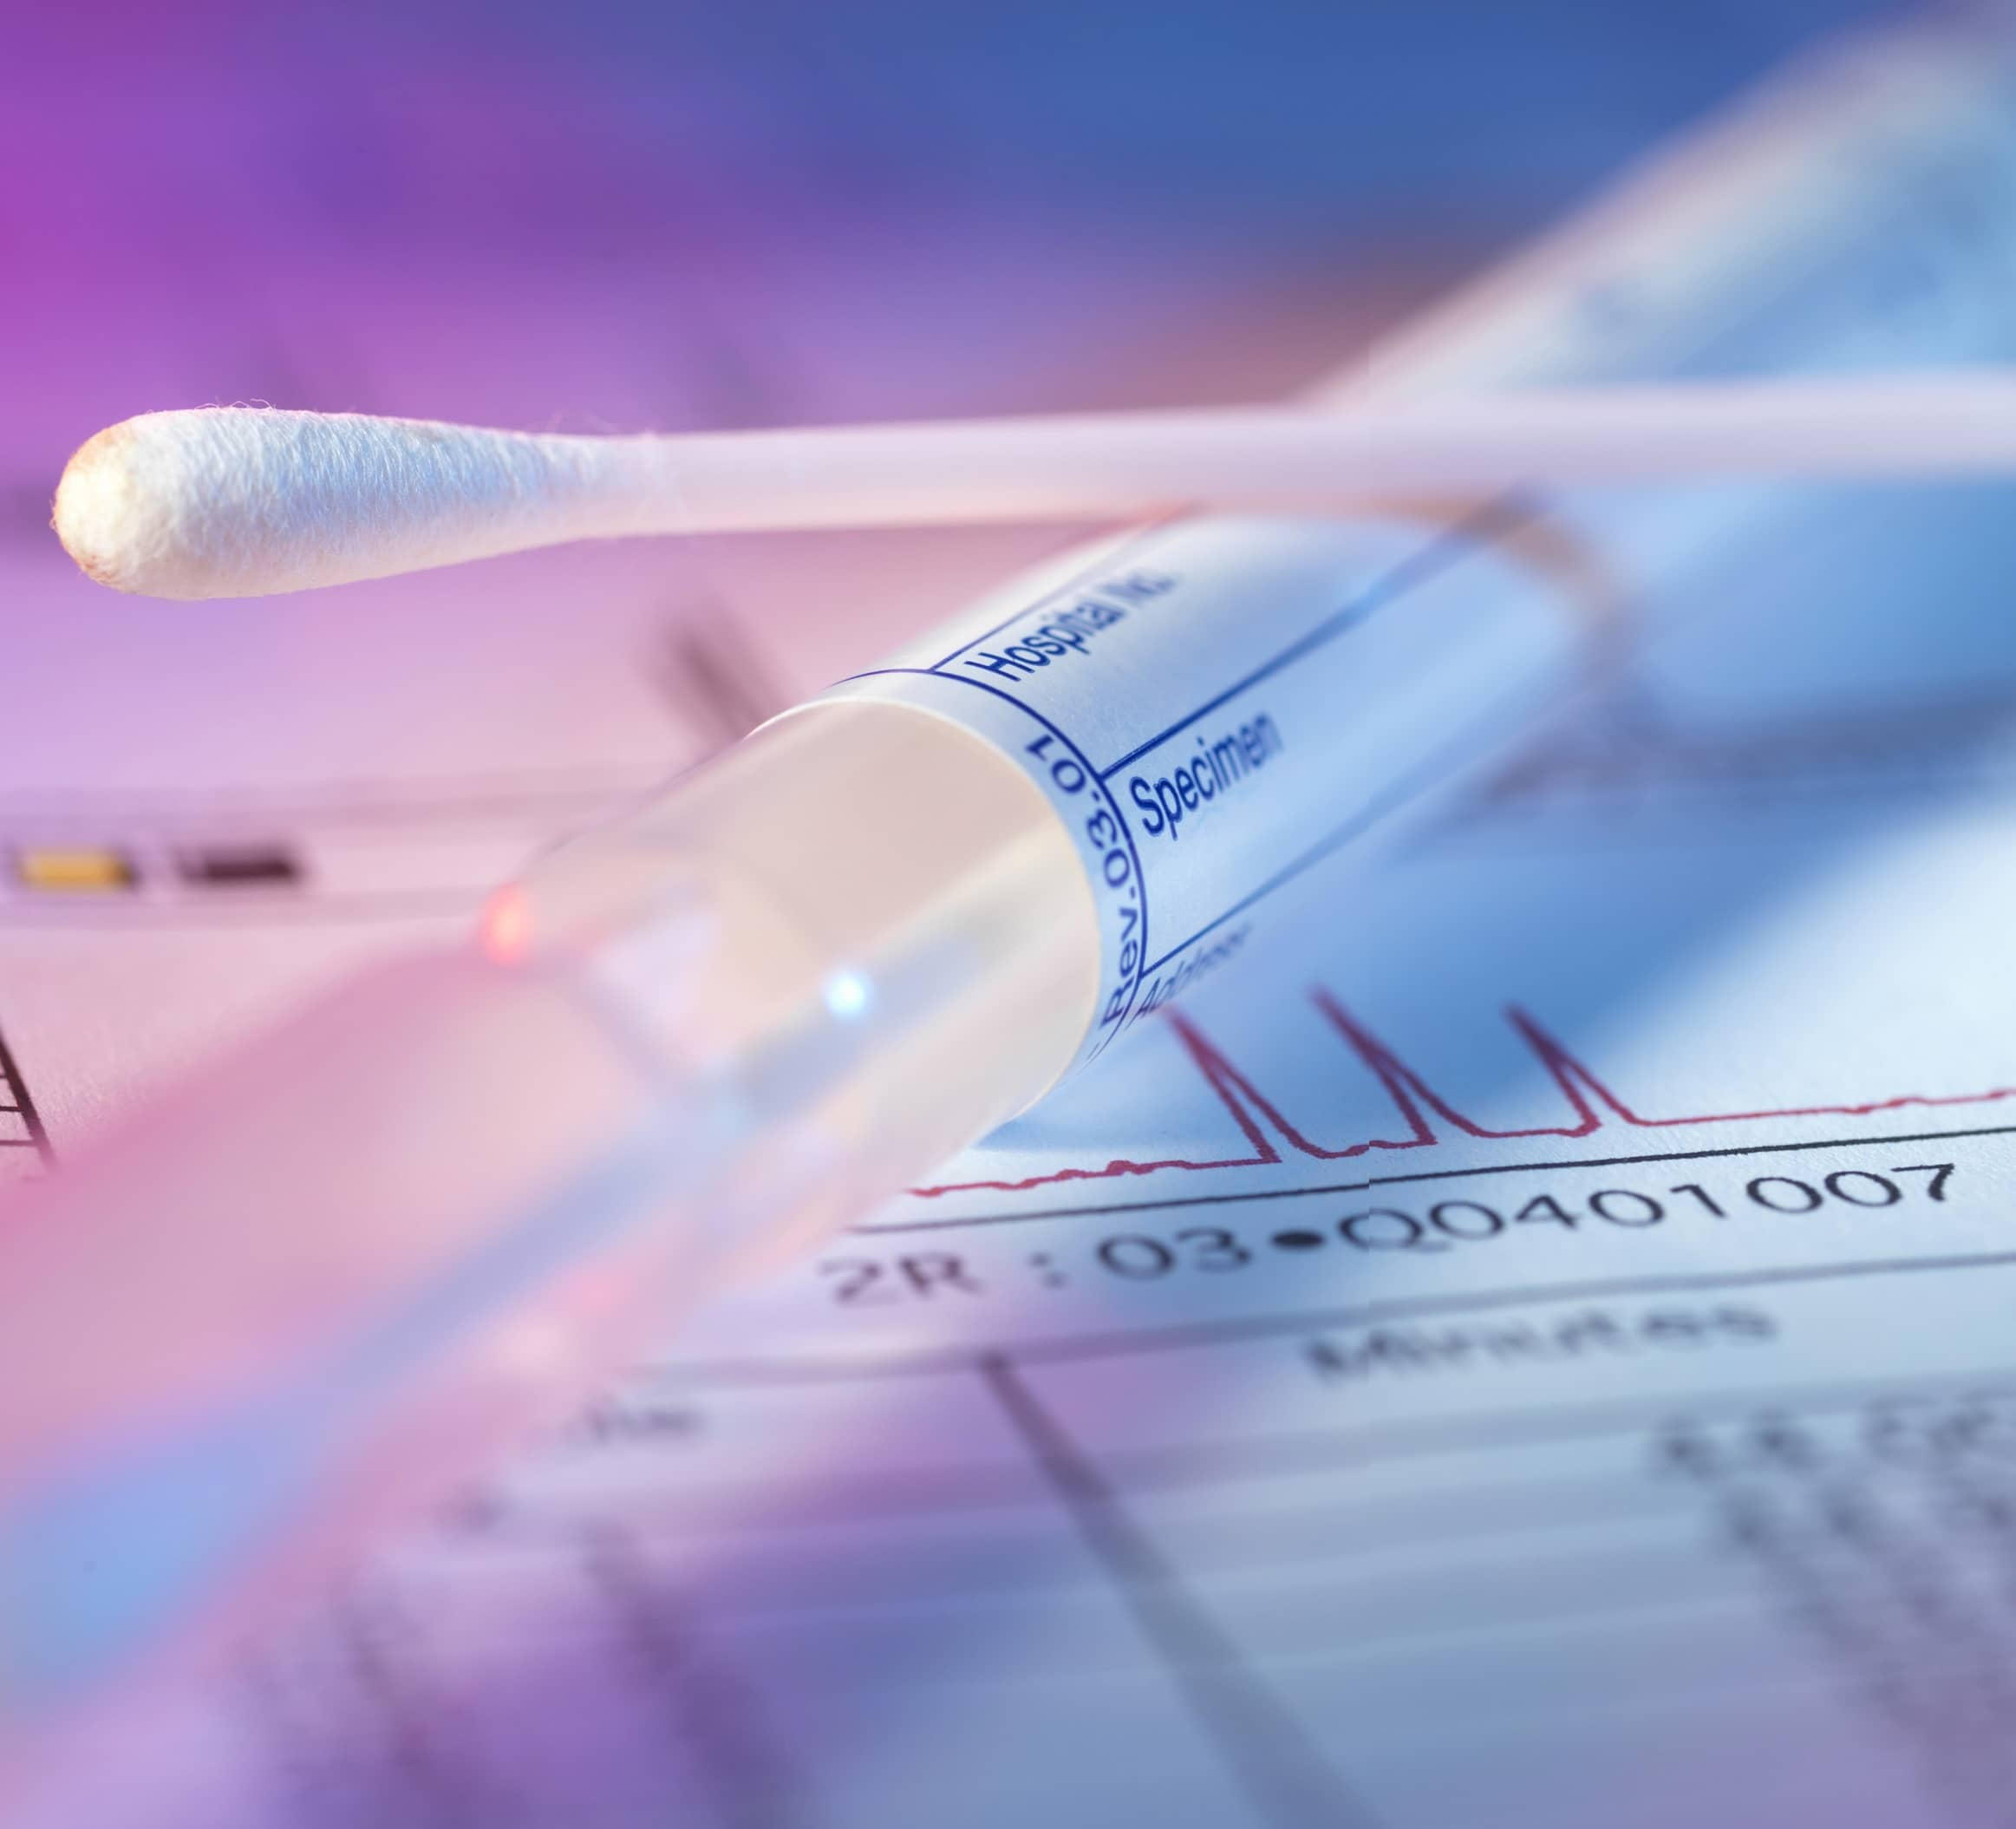 Health System Offers Free DNA Tests For 10,000 Floridians